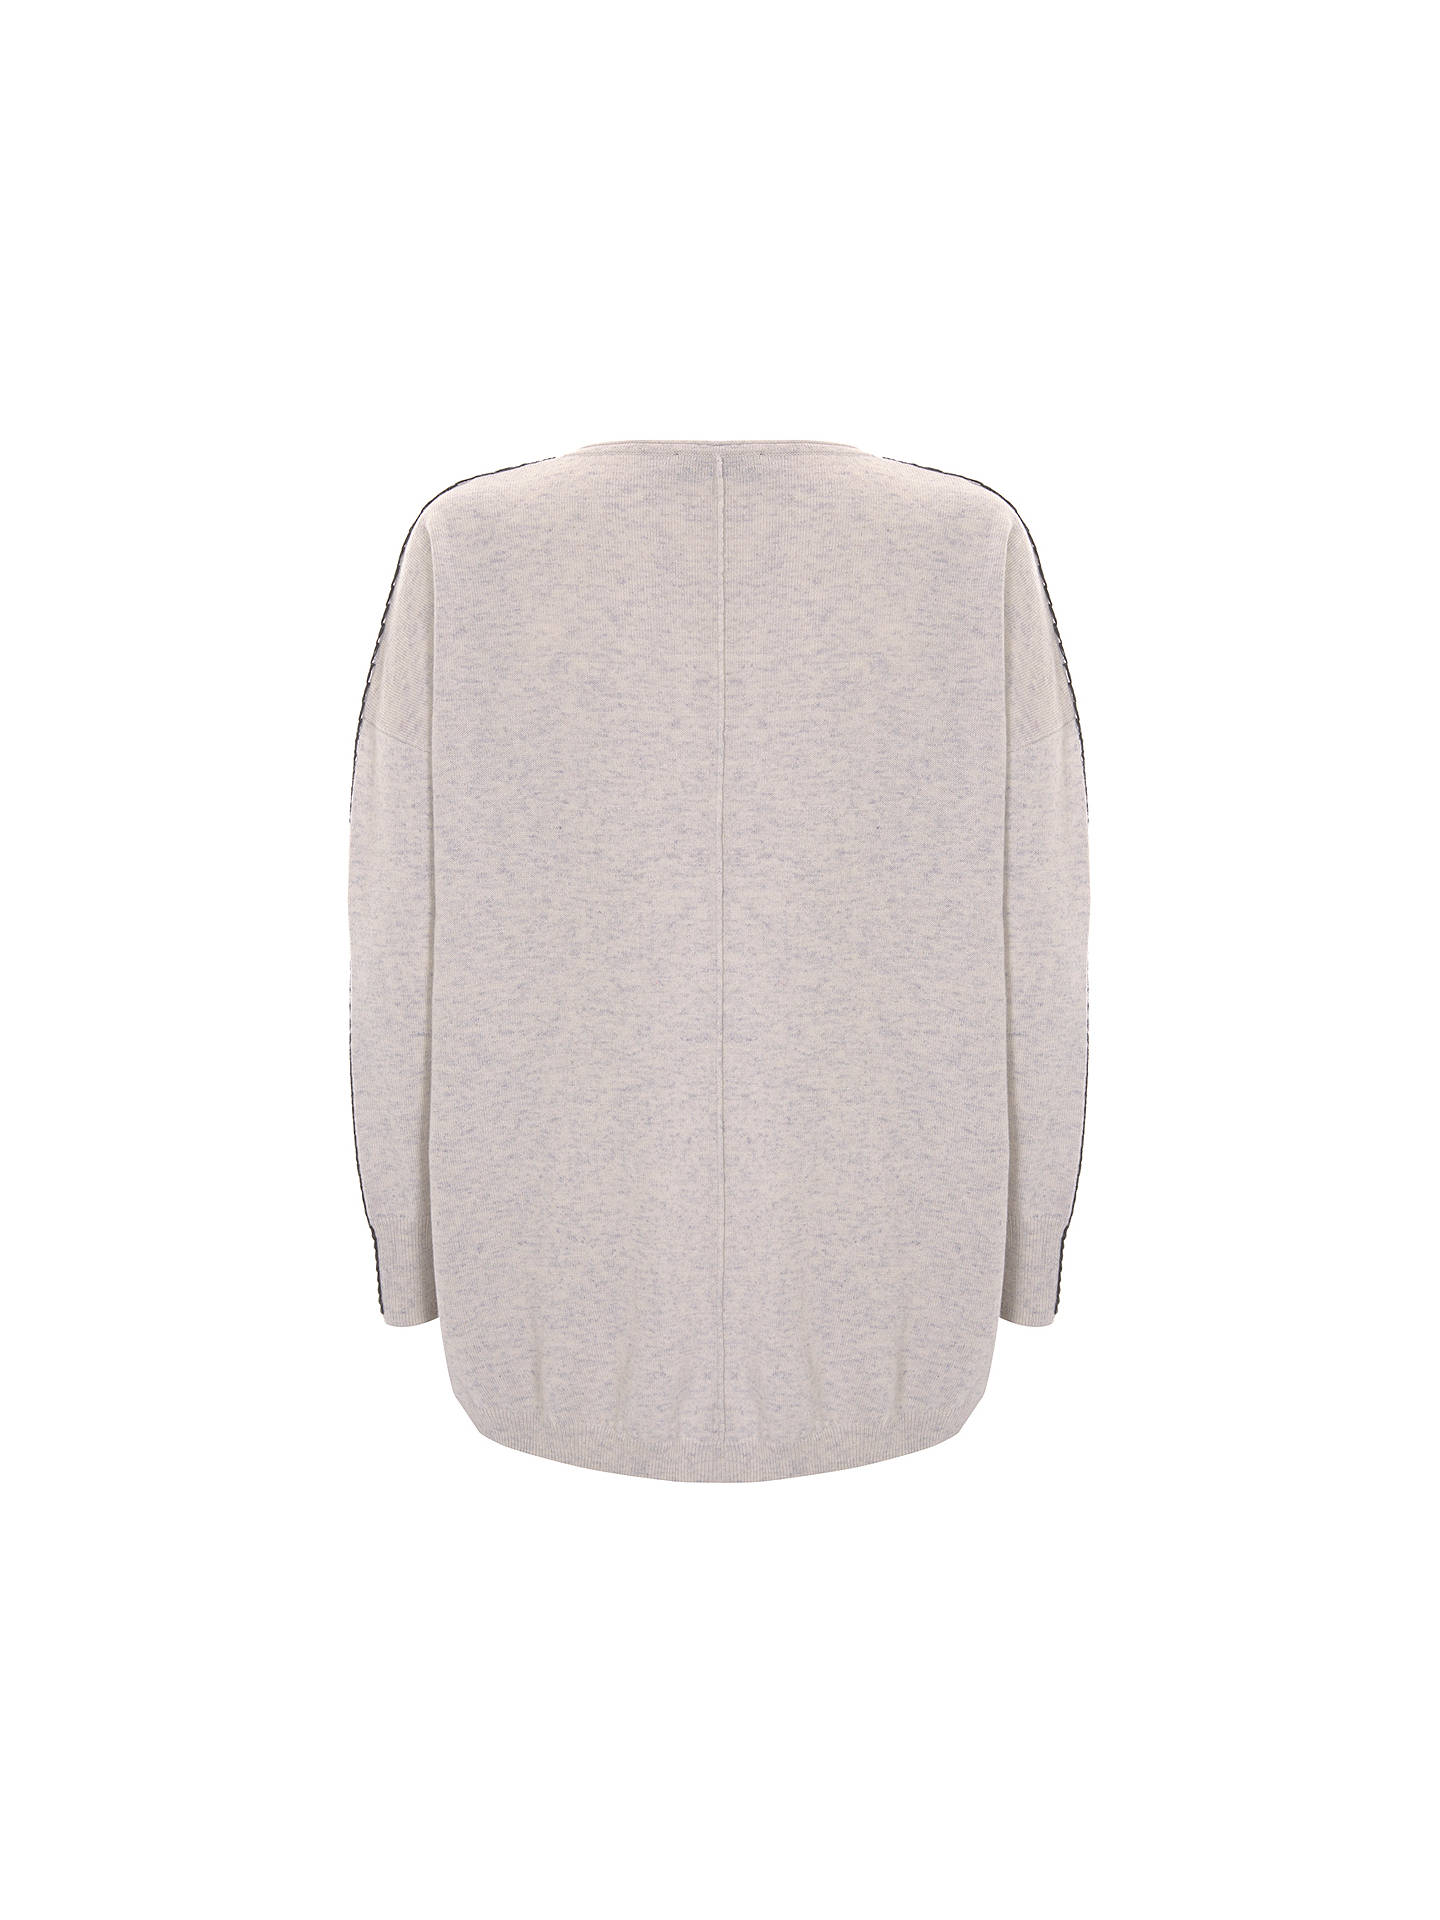 BuyMint Velvet Whip Stitch Cocoon Knit Jumper, Neutrals, XS Online at johnlewis.com